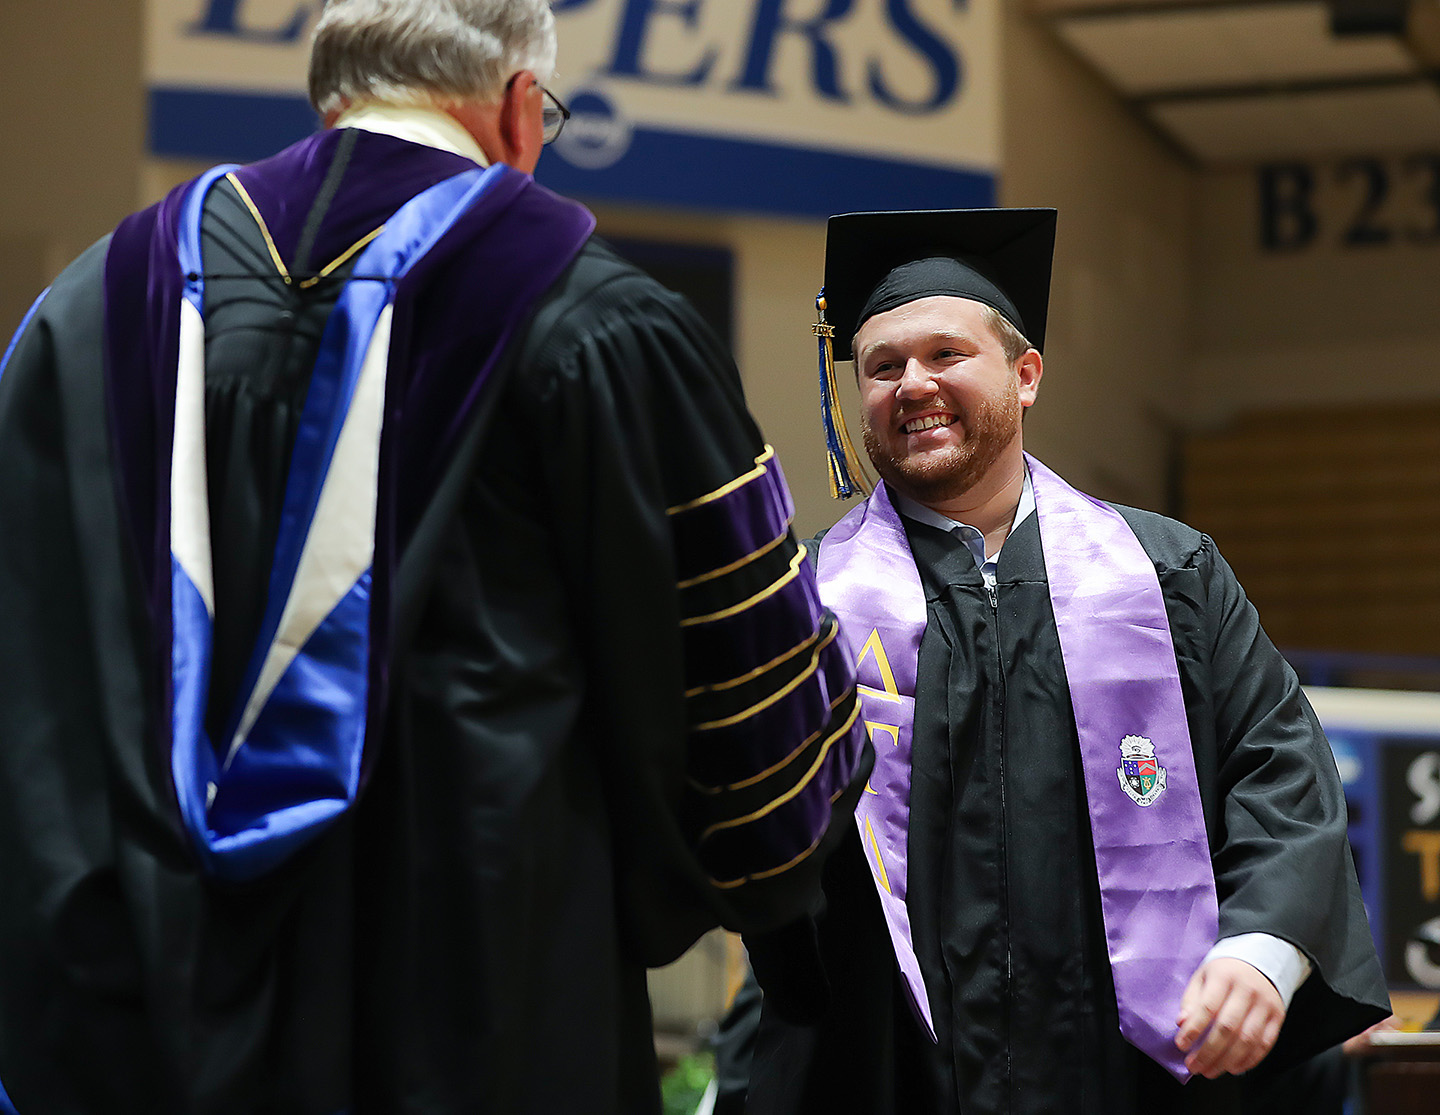 Brady Deprez, right, receives his degree from UNK Chancellor Doug Kristensen during Friday's summer commencement ceremony at the Health and Sports Center on campus.